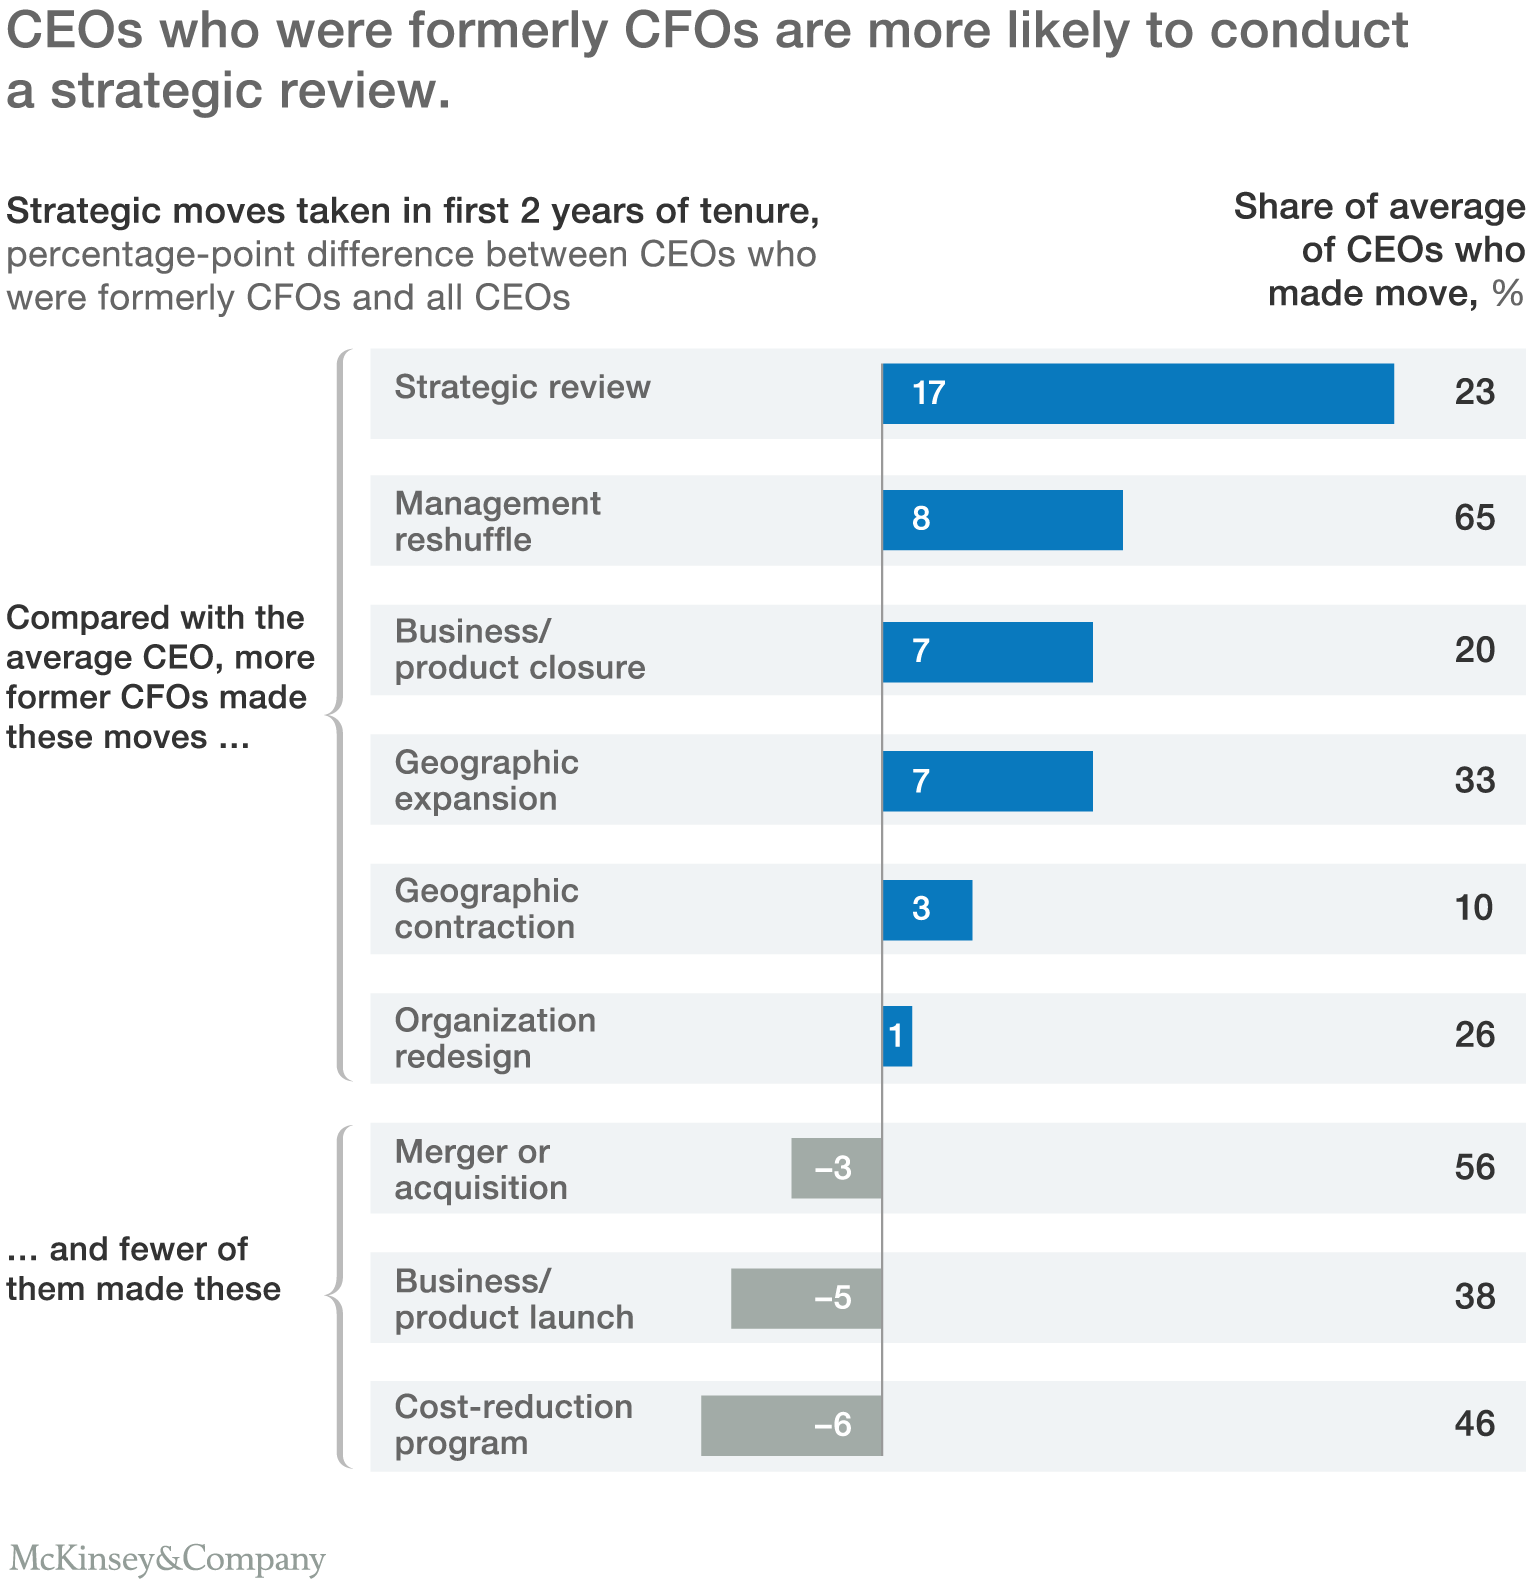 CEOs who were formerly CFOs are more likely to conduct a strategic review.